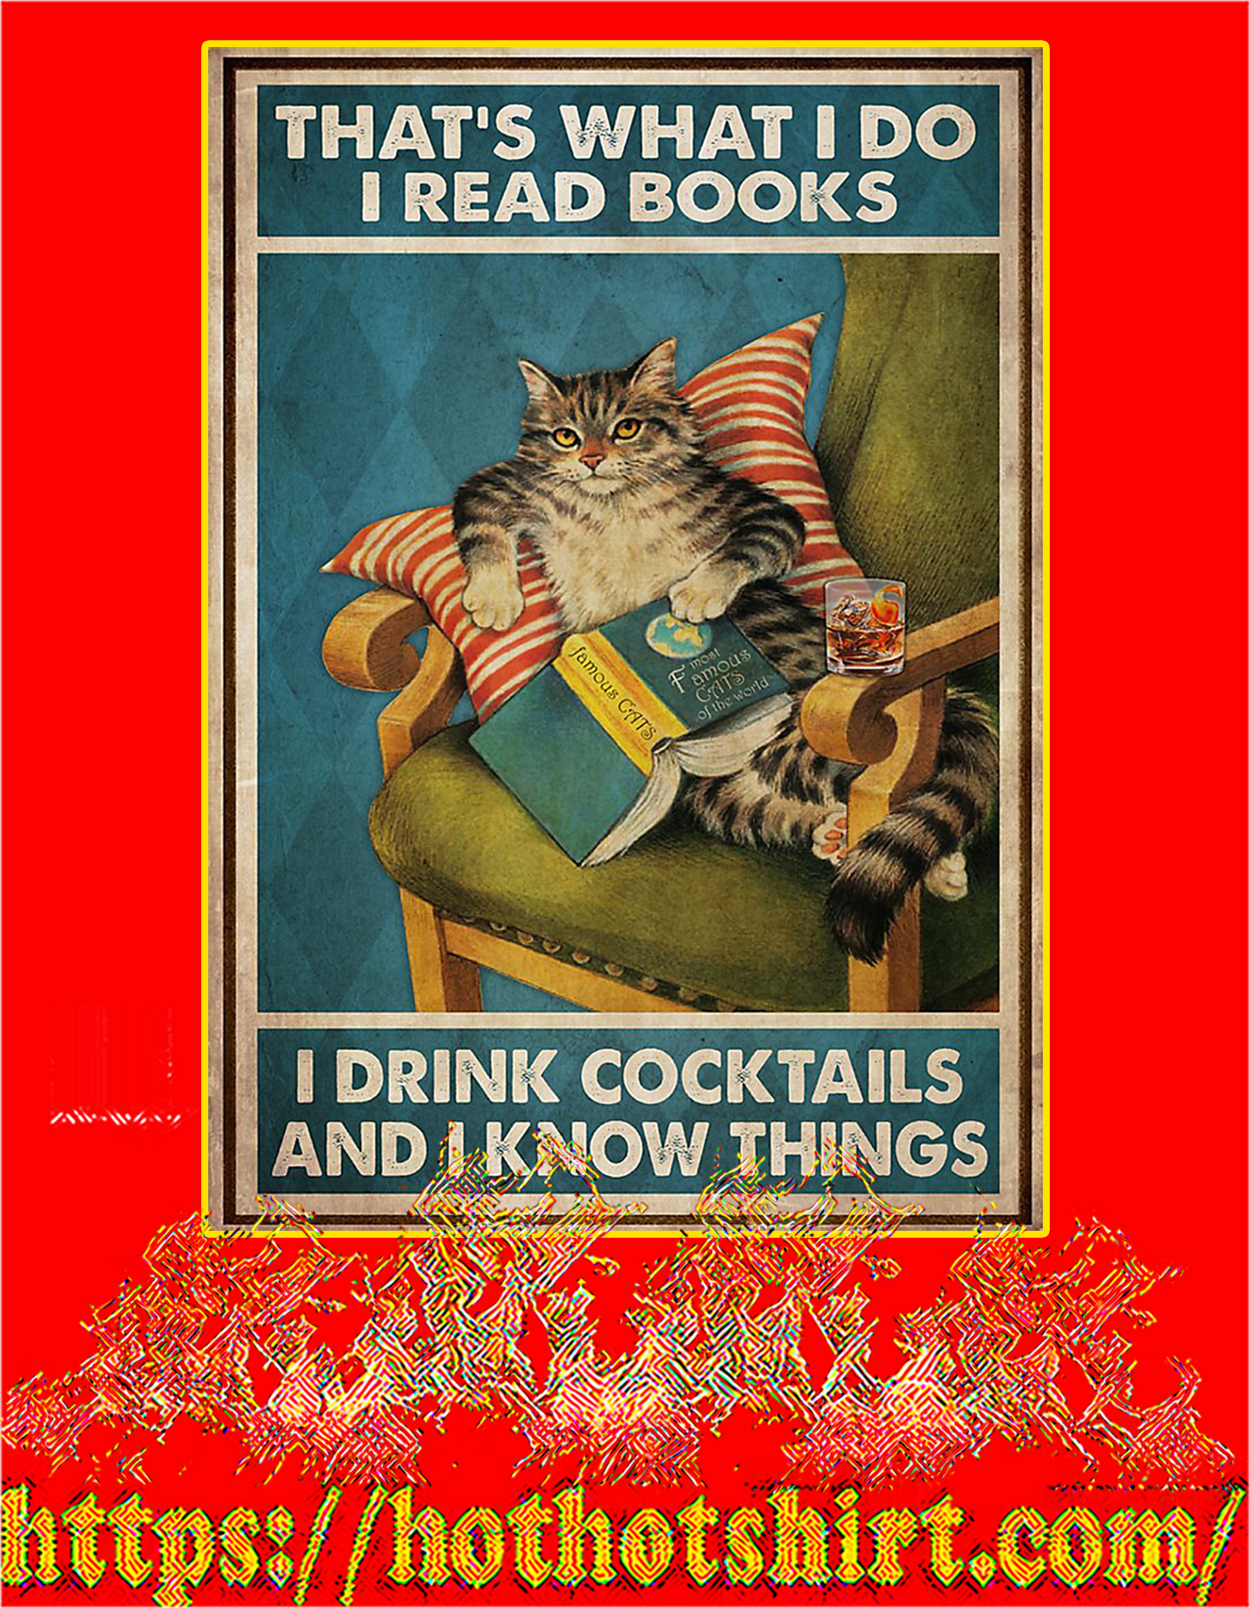 Cat That's what I do I read books I drink cocktails and I know things poster - A3